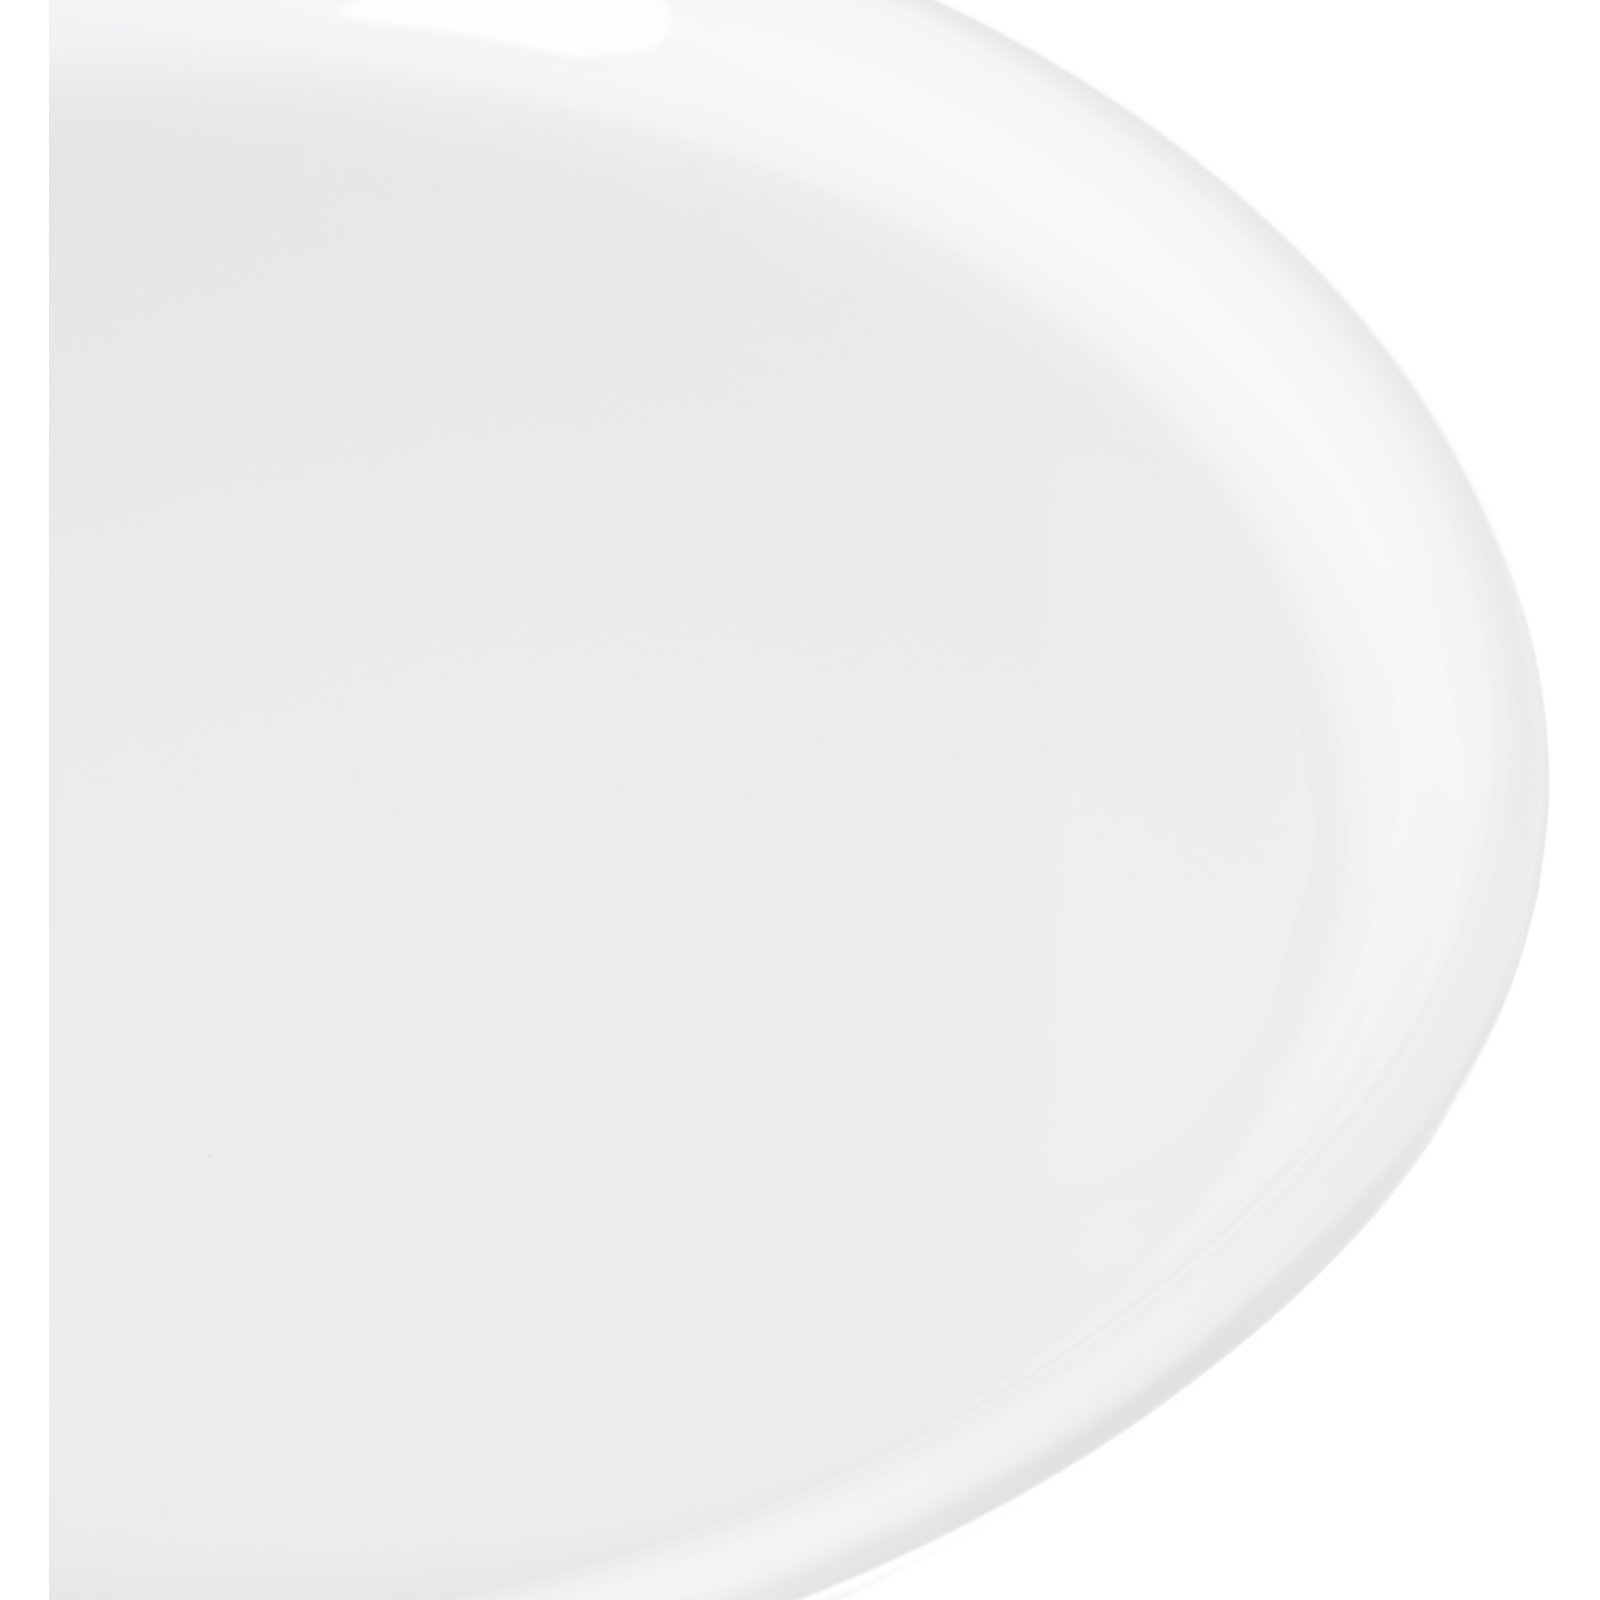 ... 5300202 - Stadia Melamine Bread and Butter Plate 7.25  - White  sc 1 st  Carlisle FoodService Products & 5300202 - Stadia Melamine Bread and Butter Plate 7.25